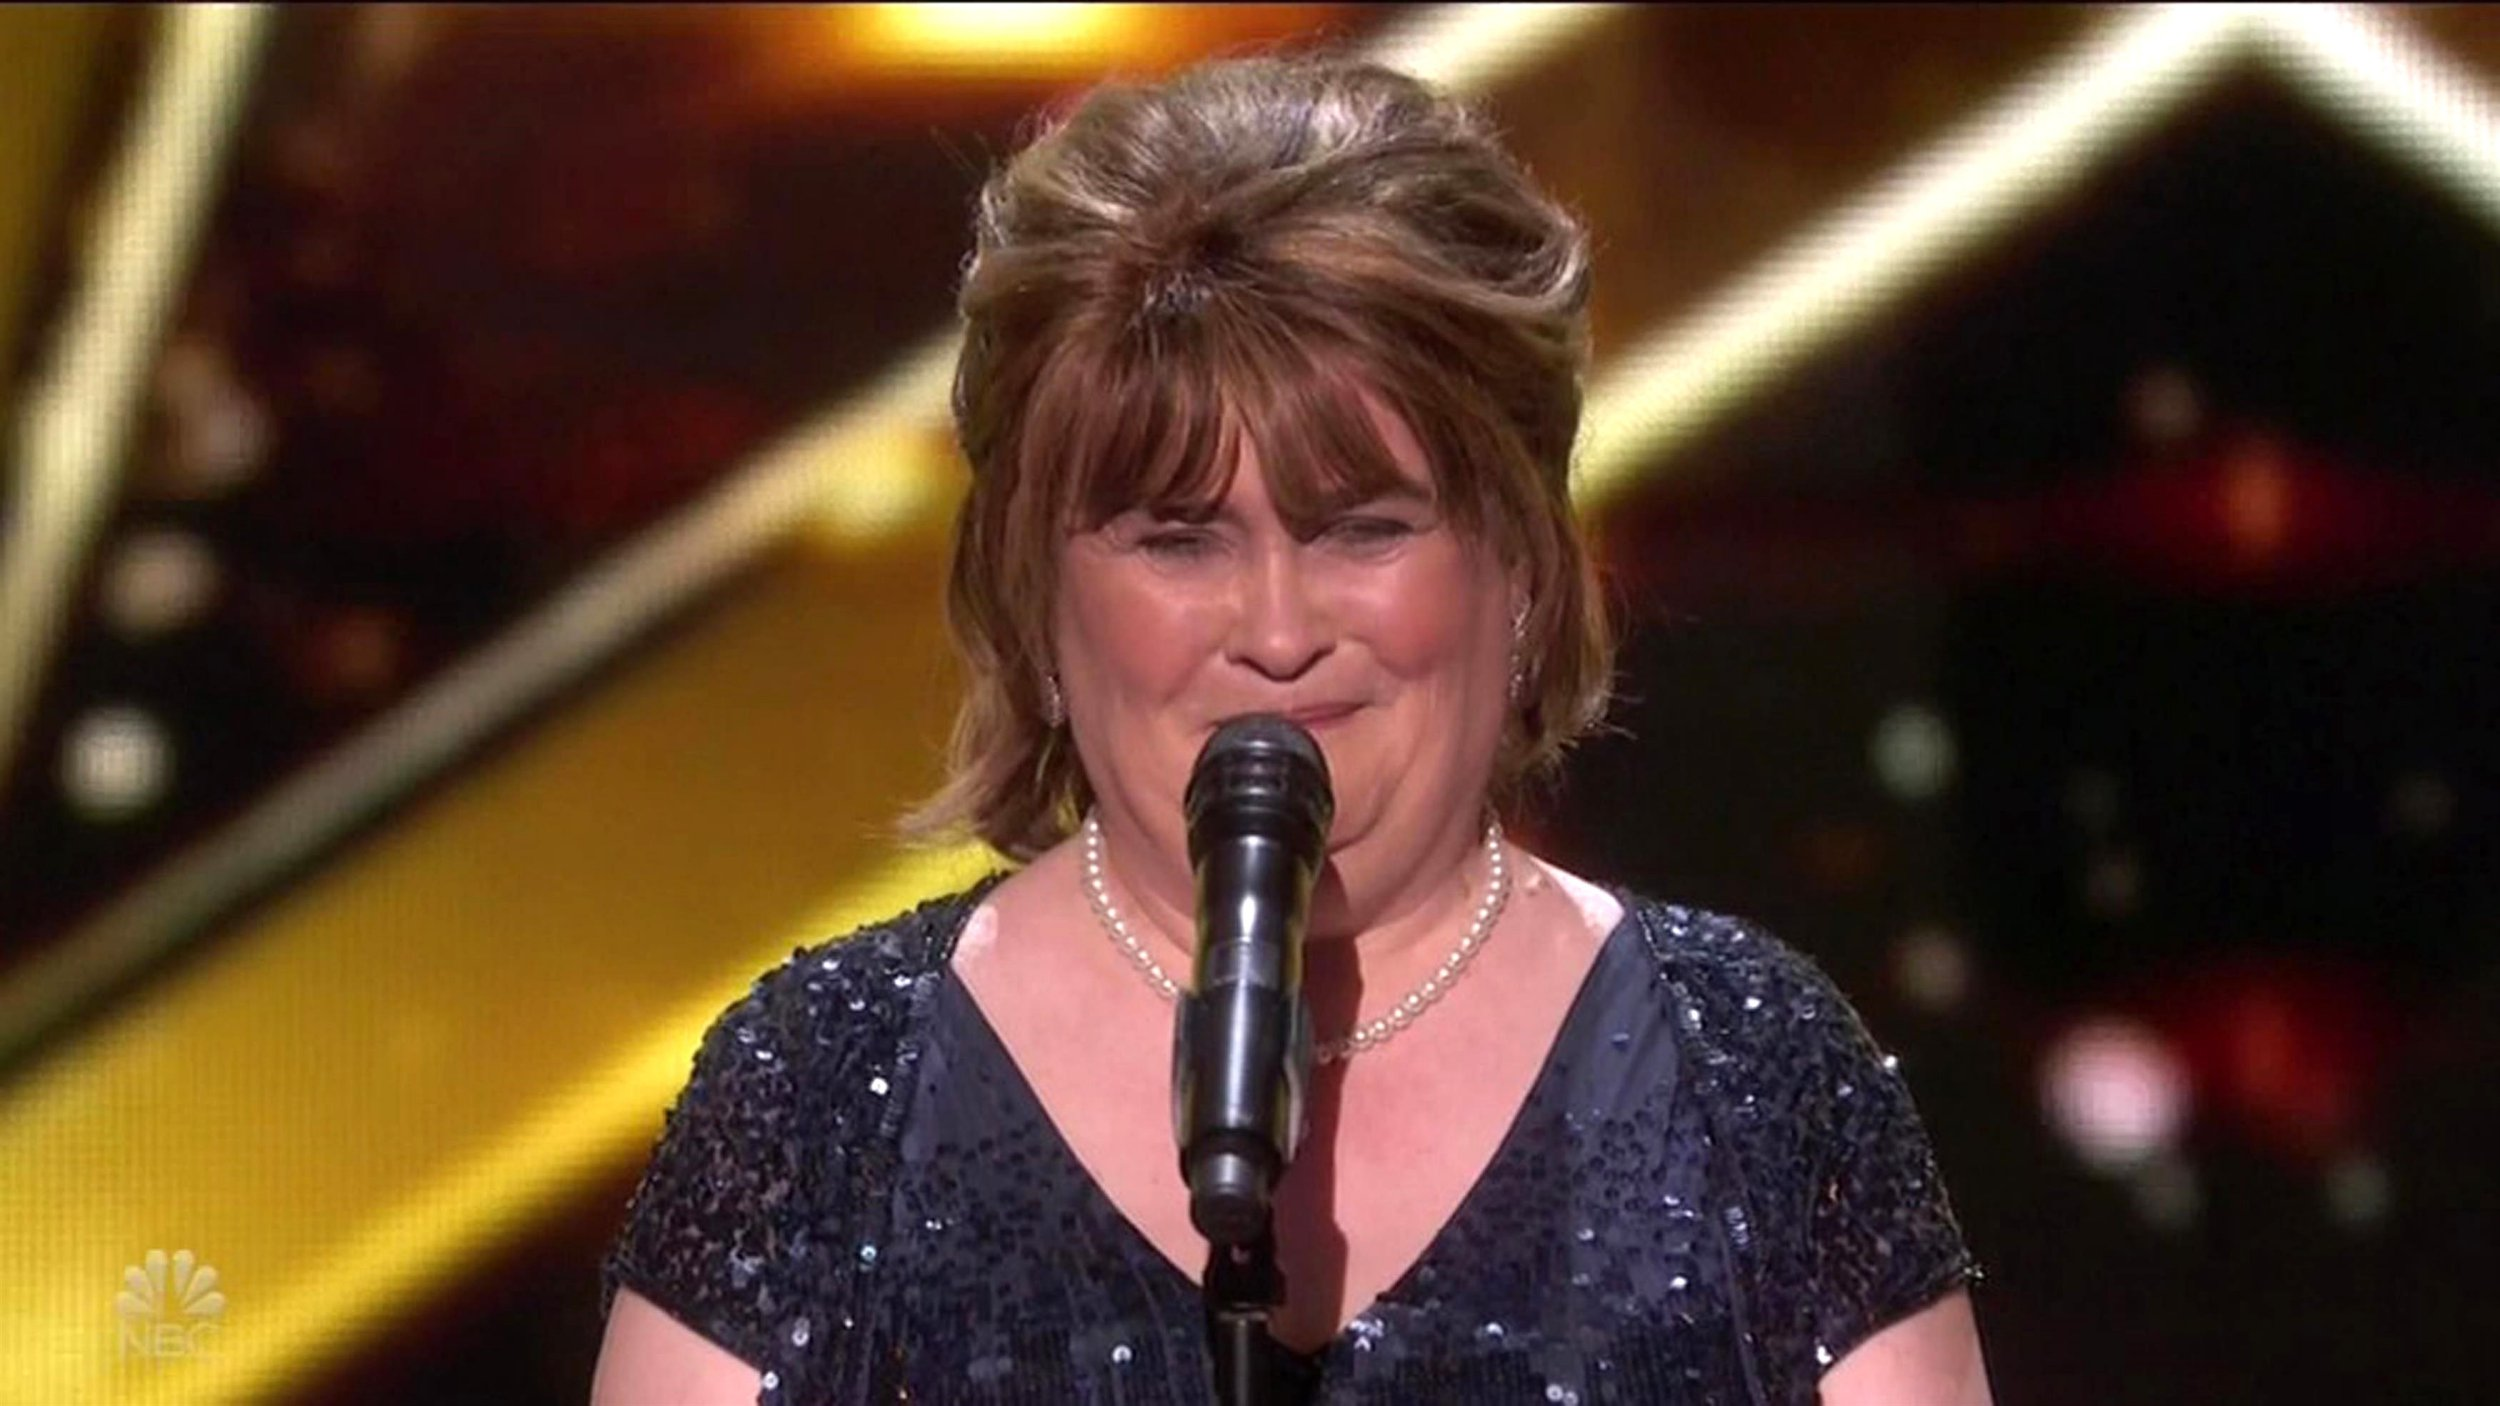 "BGUK_1451429 - ** RIGHTS: WORLDWIDE EXCEPT IN UNITED STATES ** Los Angeles, CA - Susan Boyle gets Golden Buzzer and advances straight to the finals as she appears on America's Got Talent: The Champions. The Scottish singer first wowed on Britain's Got Talent almost ten years ago - and she proved she's still got the talent to wow the judges when she appeared on the new show in the US - as she got the Golden Buzzer as the first through to the finals. The new spin-off show brought 50 of the top performers worldwide from the franchise's history, with Simon Cowell saying: ""It's like the Olympics: the best of the best. You're not just taking on America, you're taking on the world."" Boyle was by far the most anticipated performer as the first 10 champions performed, getting rapturous applause and ovations as soon as she took the stage. Cowell looked genuinely moved to once again see the singer who became a worldwide viral phenomenon thanks to her performance of I Dreamed A Dream on Britain's Got Talent in 2009. ""And what's your name?"" Simon smiled, telling her: ""Oh my God this brings back so many great memories having you back. Genuinely, I'm beyond thrilled that you're here tonight."" The audience appeared enraptured during her ballad-style version of The Rolling Stones classic Wild Horses. ""I can't think of any other contestant who has defined this show better than you. You're the one. You made a huge difference to a lot of people's lives and I'm absolutely thrilled that you're here,"" Cowell told her .Mel B added: ""I want to be the woman that gives you something that you deserve."" The Spice Girls star then jumped up to press the Golden Buzzer sending her through, with Boyle looking stunned as gold confetti fell around her. Cowell followed Mel in running up onstage to hug her, telling Boyle as he pointed to the ovations: ""I'm so proud of you. You sounded amazing. Look at that."" Boyle finally said she was 'very happy and very humble,' adding ""Thank you all very much."" *BACKGRID DOES NOT CLAIM ANY COPYRIGHT OR LICENSE IN THE ATTACHED MA Pictured: Susan Boyle BACKGRID UK 7 JANUARY 2019 BYLINE MUST READ: NBC / BACKGRID *BACKGRID DOES NOT CLAIM ANY COPYRIGHT OR LICENSE IN THE ATTACHED MATERIAL. ANY DOWNLOADING FEES CHARGED BY BACKGRID ARE FOR BACKGRID'S SERVICES ONLY, AND DO NOT, NOR ARE THEY INTENDED TO, CONVEY TO THE USER ANY COPYRIGHT OR LICENSE IN THE MATERIAL. BY PUBLISHING THIS MATERIAL , THE USER EXPRESSLY AGREES TO INDEMNIFY AND TO HOLD BACKGRID HARMLESS FROM ANY CLAIMS, DEMANDS, OR CAUSES OF ACTION ARISING OUT OF OR CONNECTED IN ANY WAY WITH USER'S PUBLICATION OF THE MATERIAL* UK: +44 208 344 2007 / uksales@backgrid.com USA: +1 310 798 9111 / usasales@backgrid.com *UK Clients - Pictures Containing Children Please Pixelate Face Prior To Publication*"